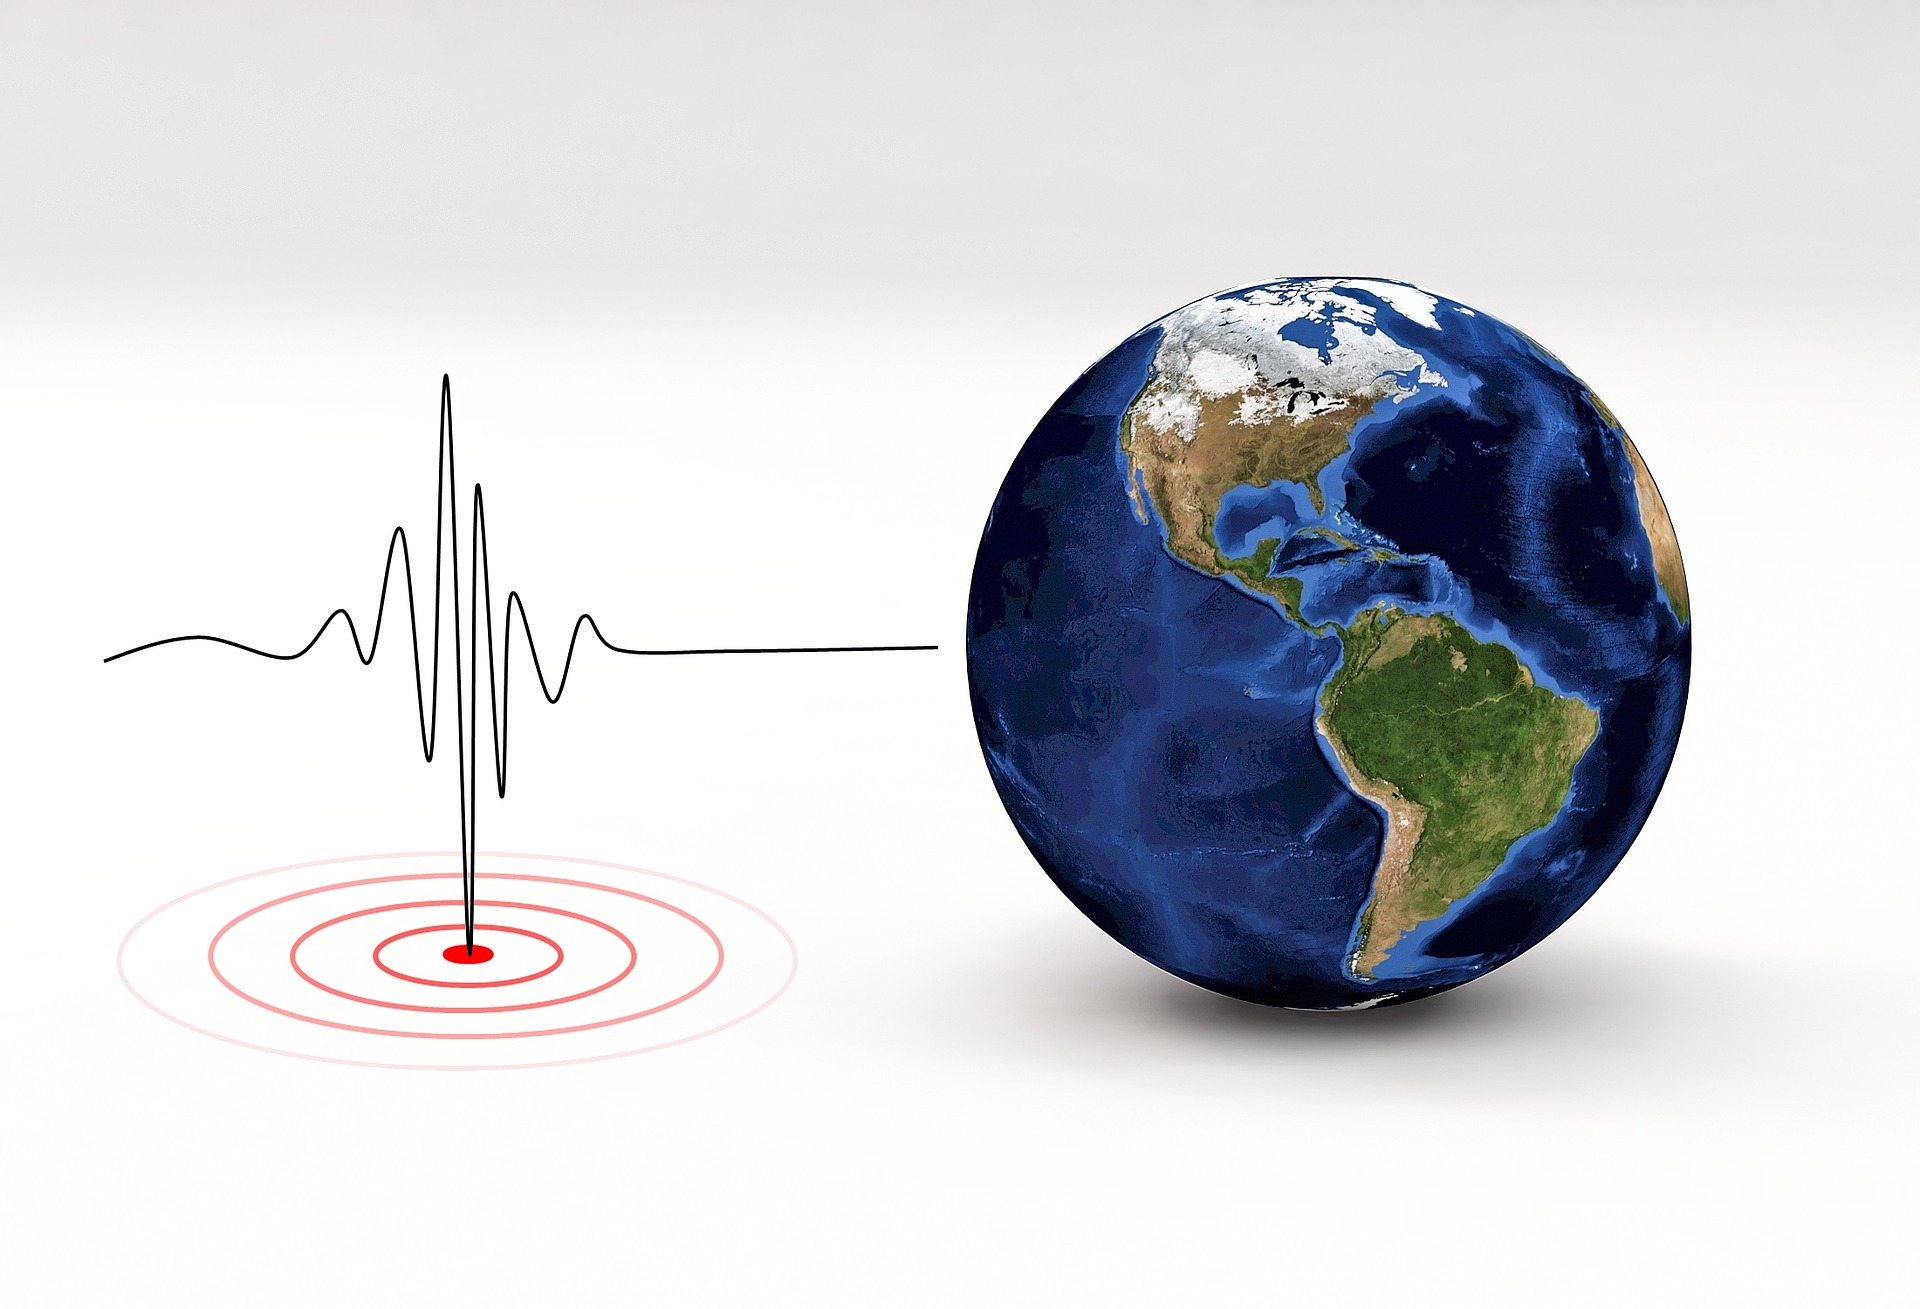 Gempa-earthquake